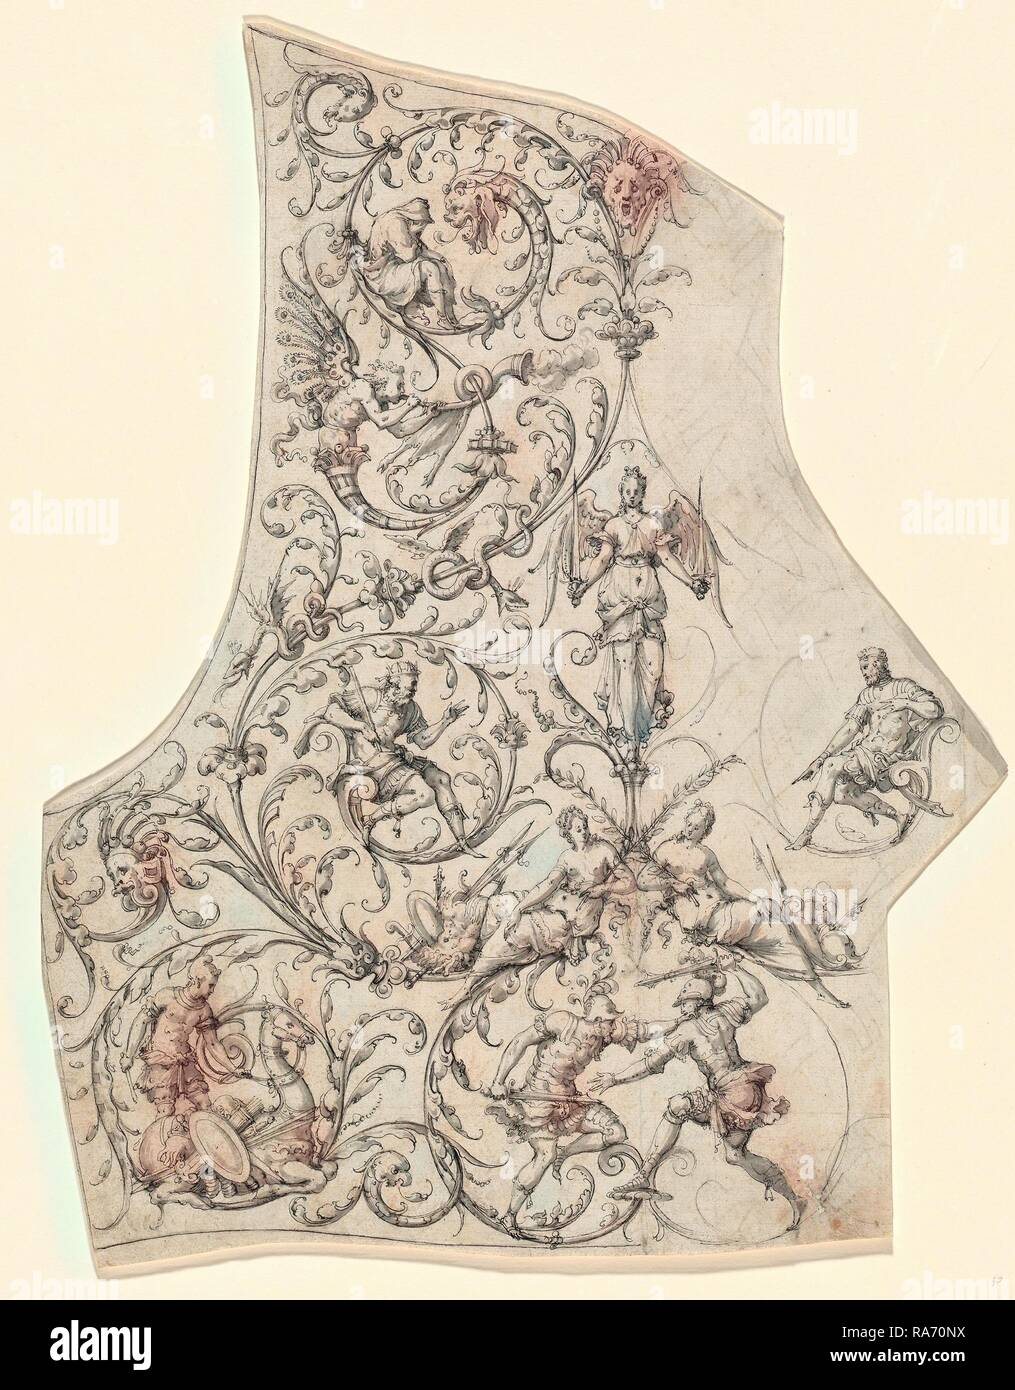 Etienne Delaune, The Backplate of a Suit of Parade Armor, French, 1518-1519-1583, c. 1557, pen and black ink with reimagined - Stock Image